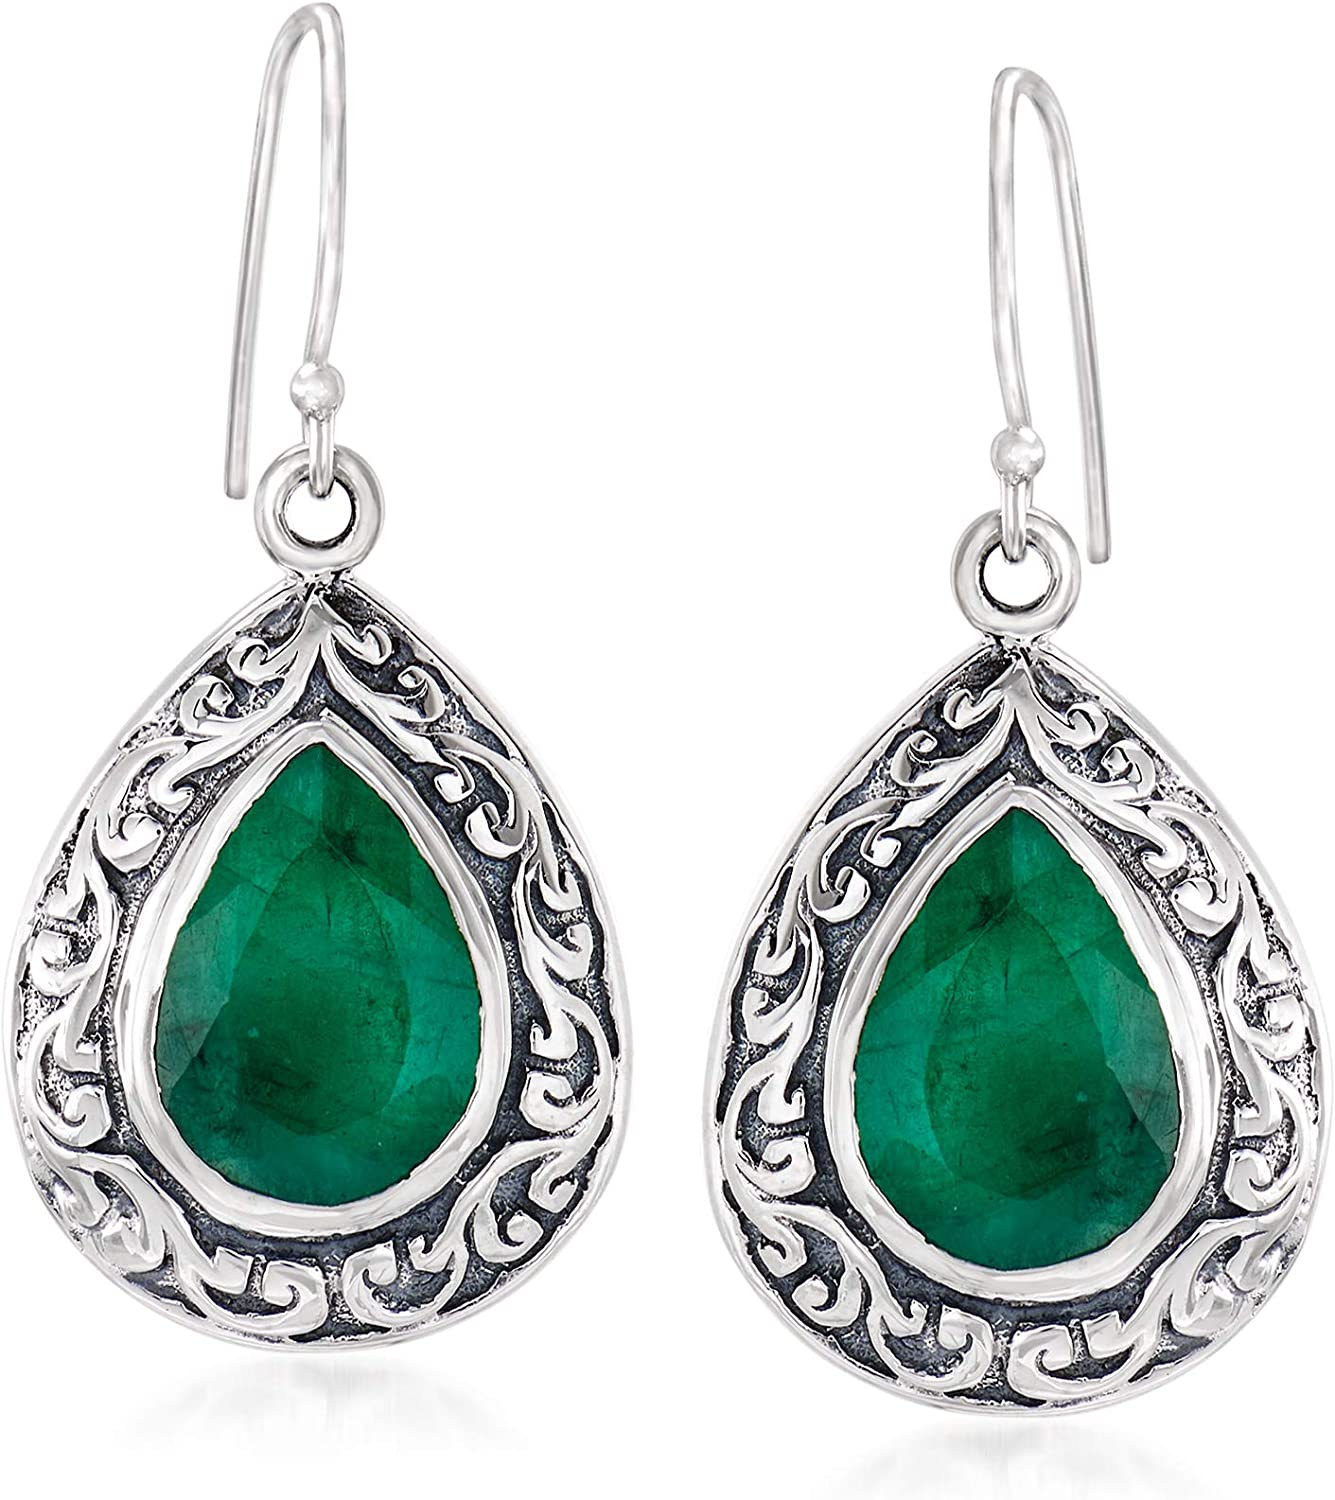 Super sale period limited Ross-Simons Oakland Mall 11.00 ct. t.w. Emerald Sterl Earrings Scroll Drop in